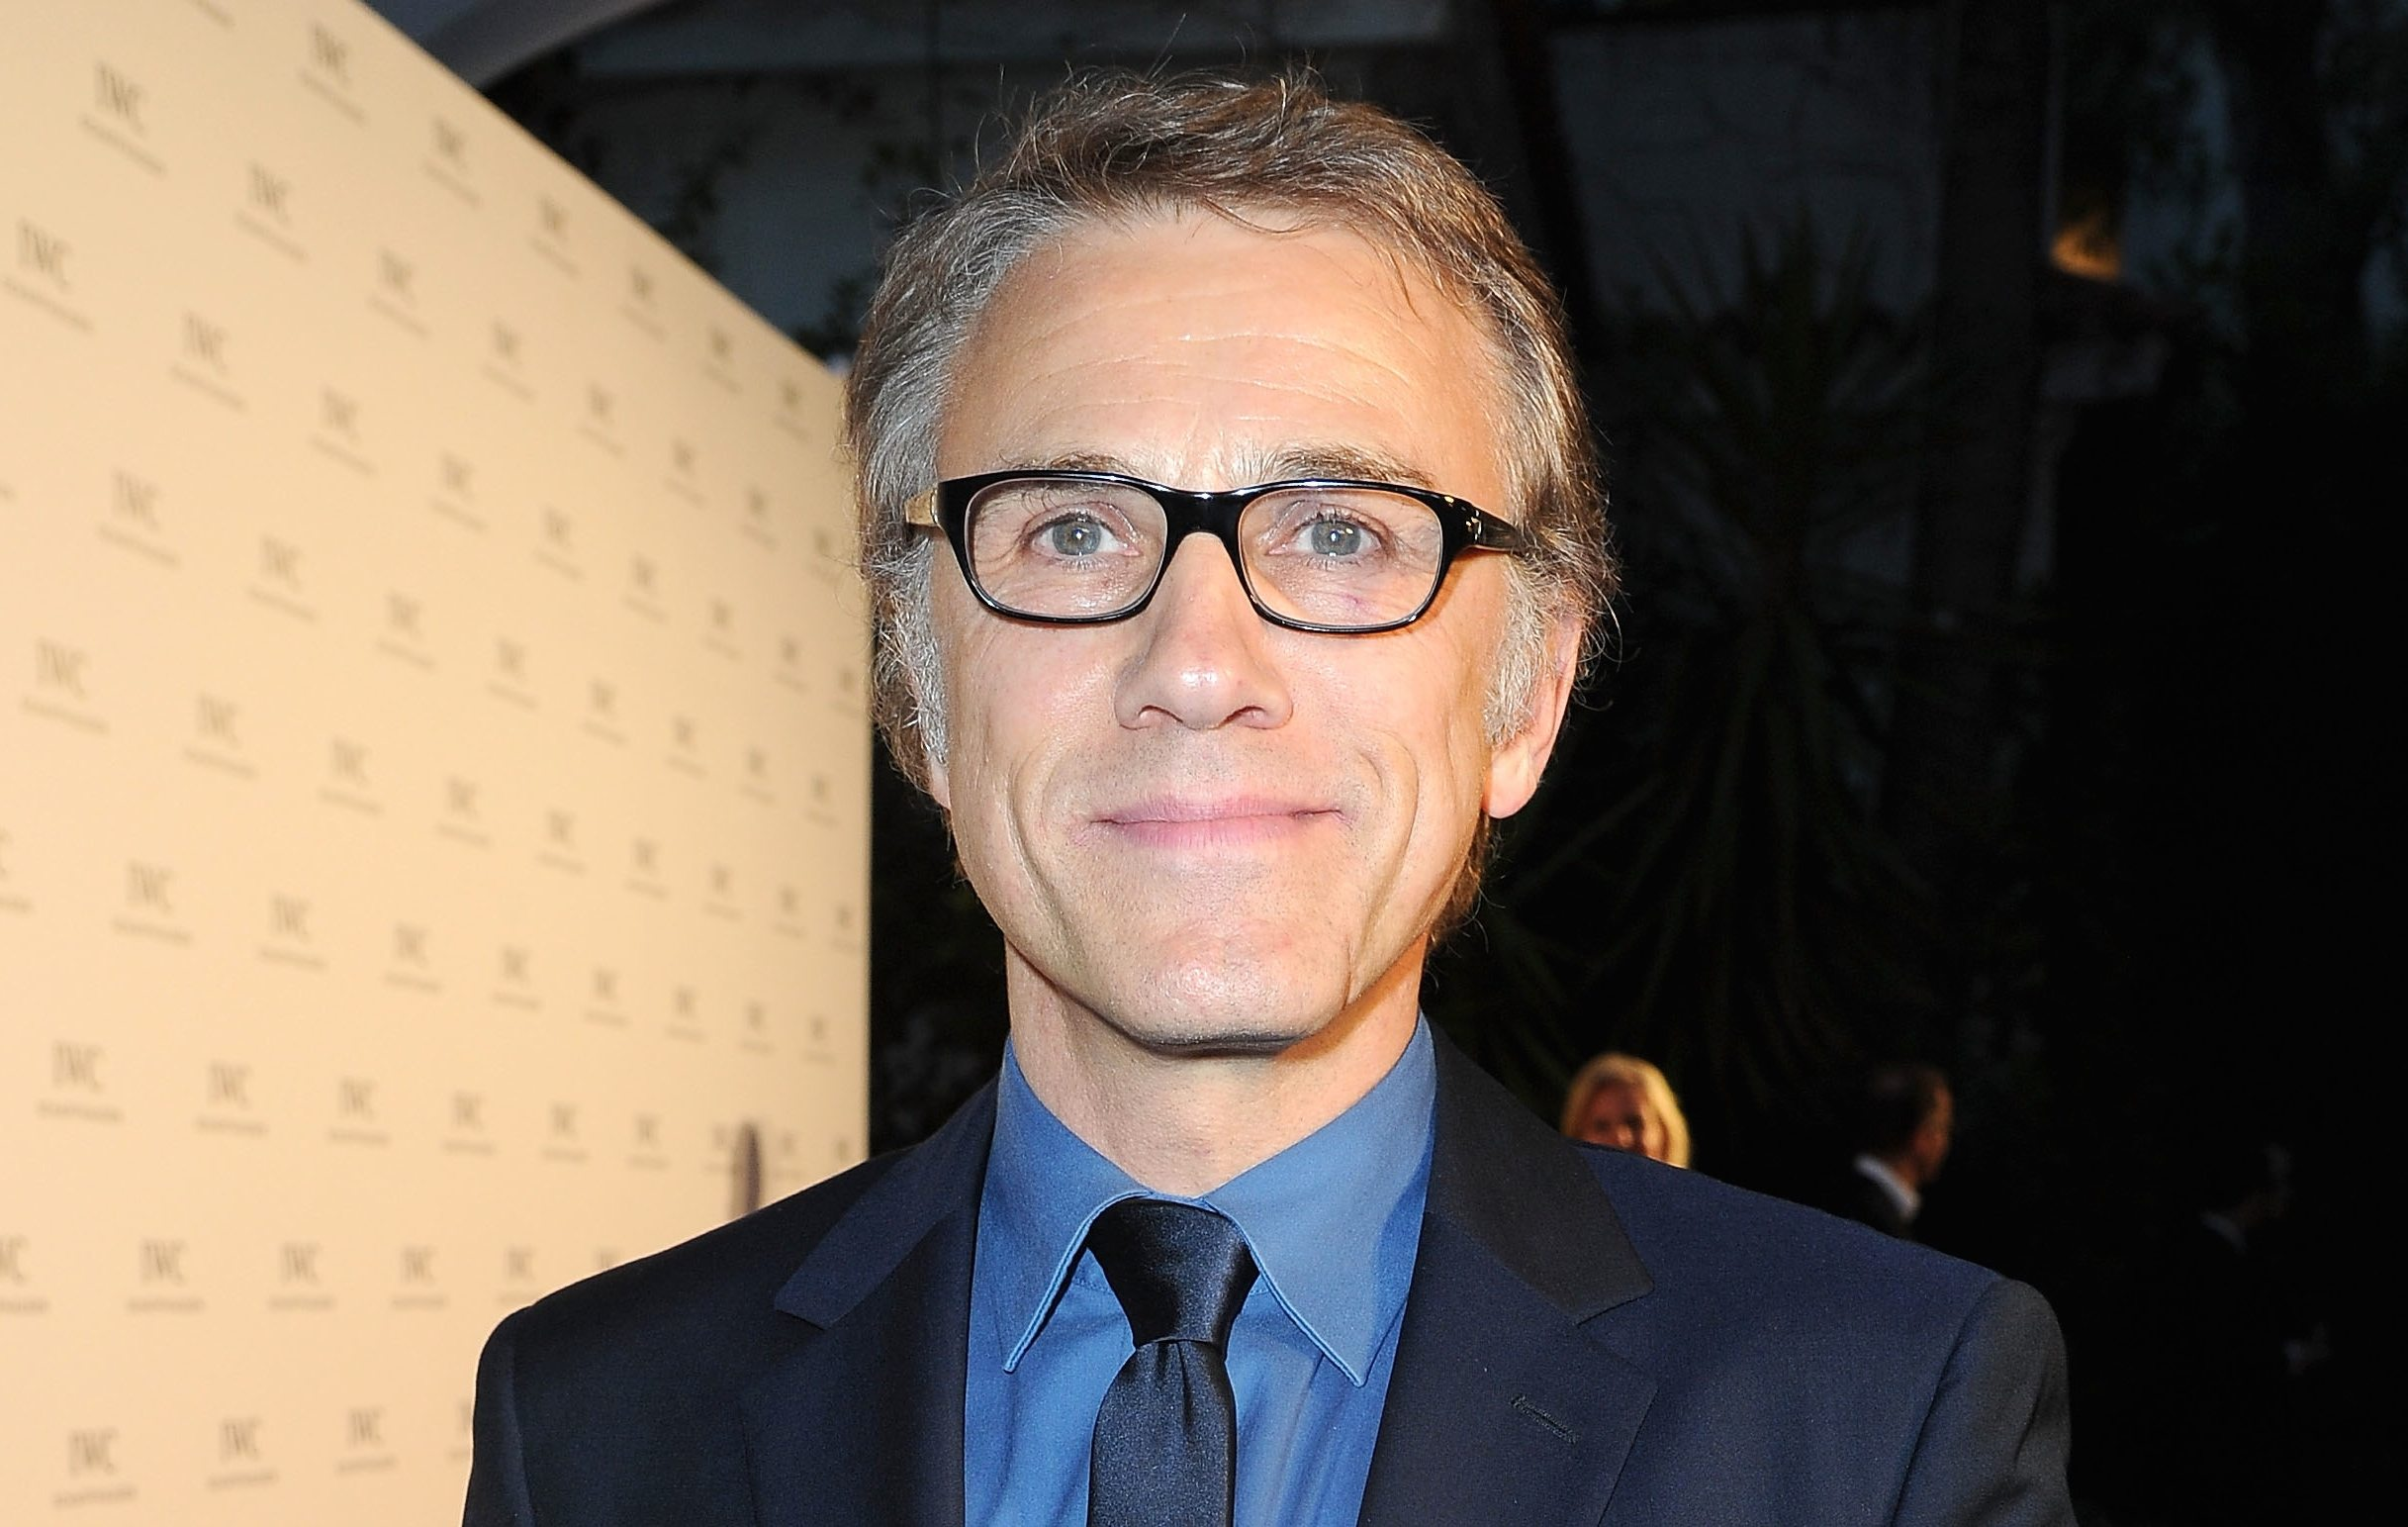 """HANDOUT - ANTIBES, FRANCE - MAY 19: Christoph Waltz attends the exclusive """"For The Love Of Cinema"""" event hosted by Swiss luxury watch manufacturer IWC Schaffhausen at the famous Hotel du Cap-Eden-Roc on May 19, 2013 in Antibes, France. (PHOTOPRESS/IWC/Pascal Le Segretain)"""